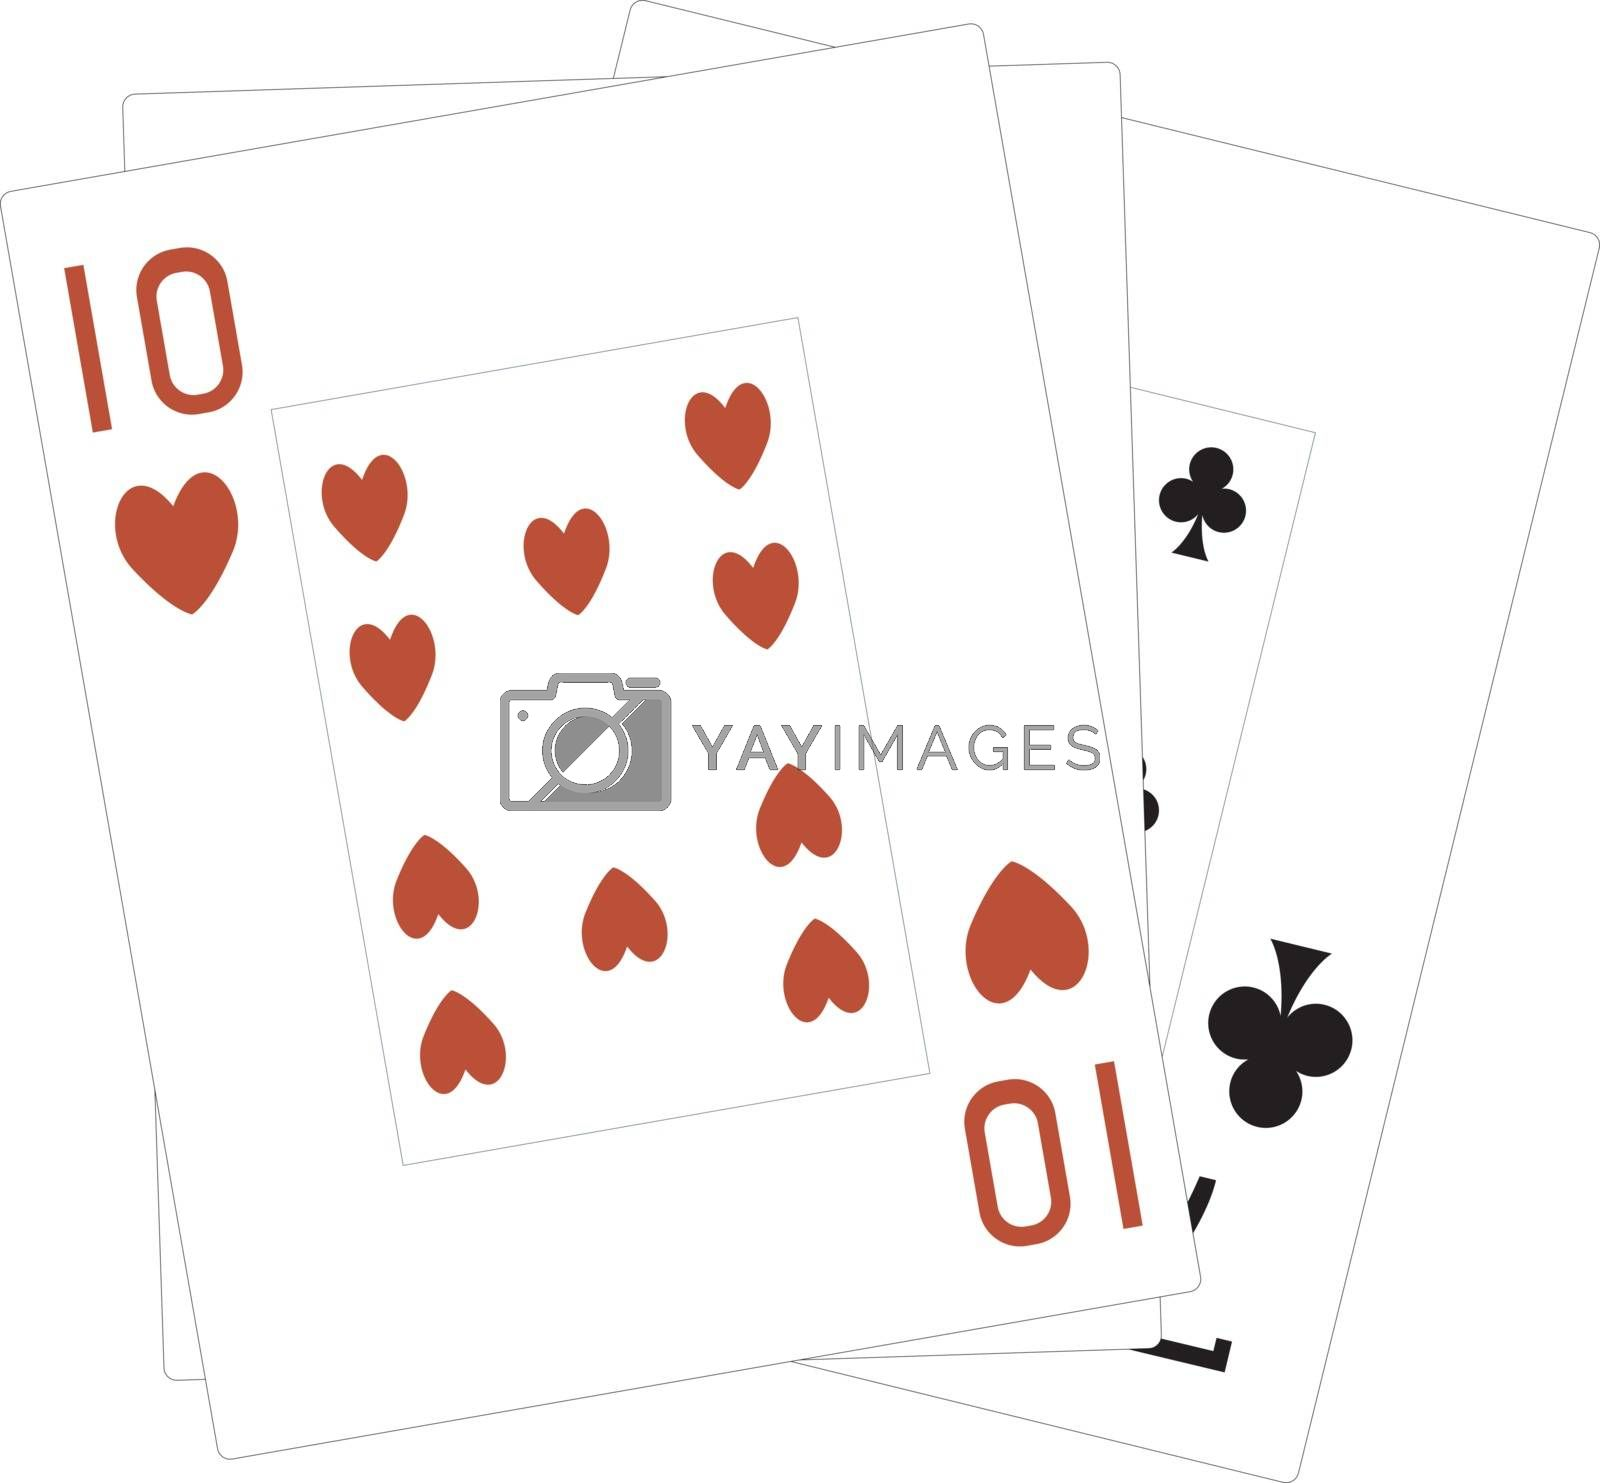 Deck of cards, illustration, vector on white background.